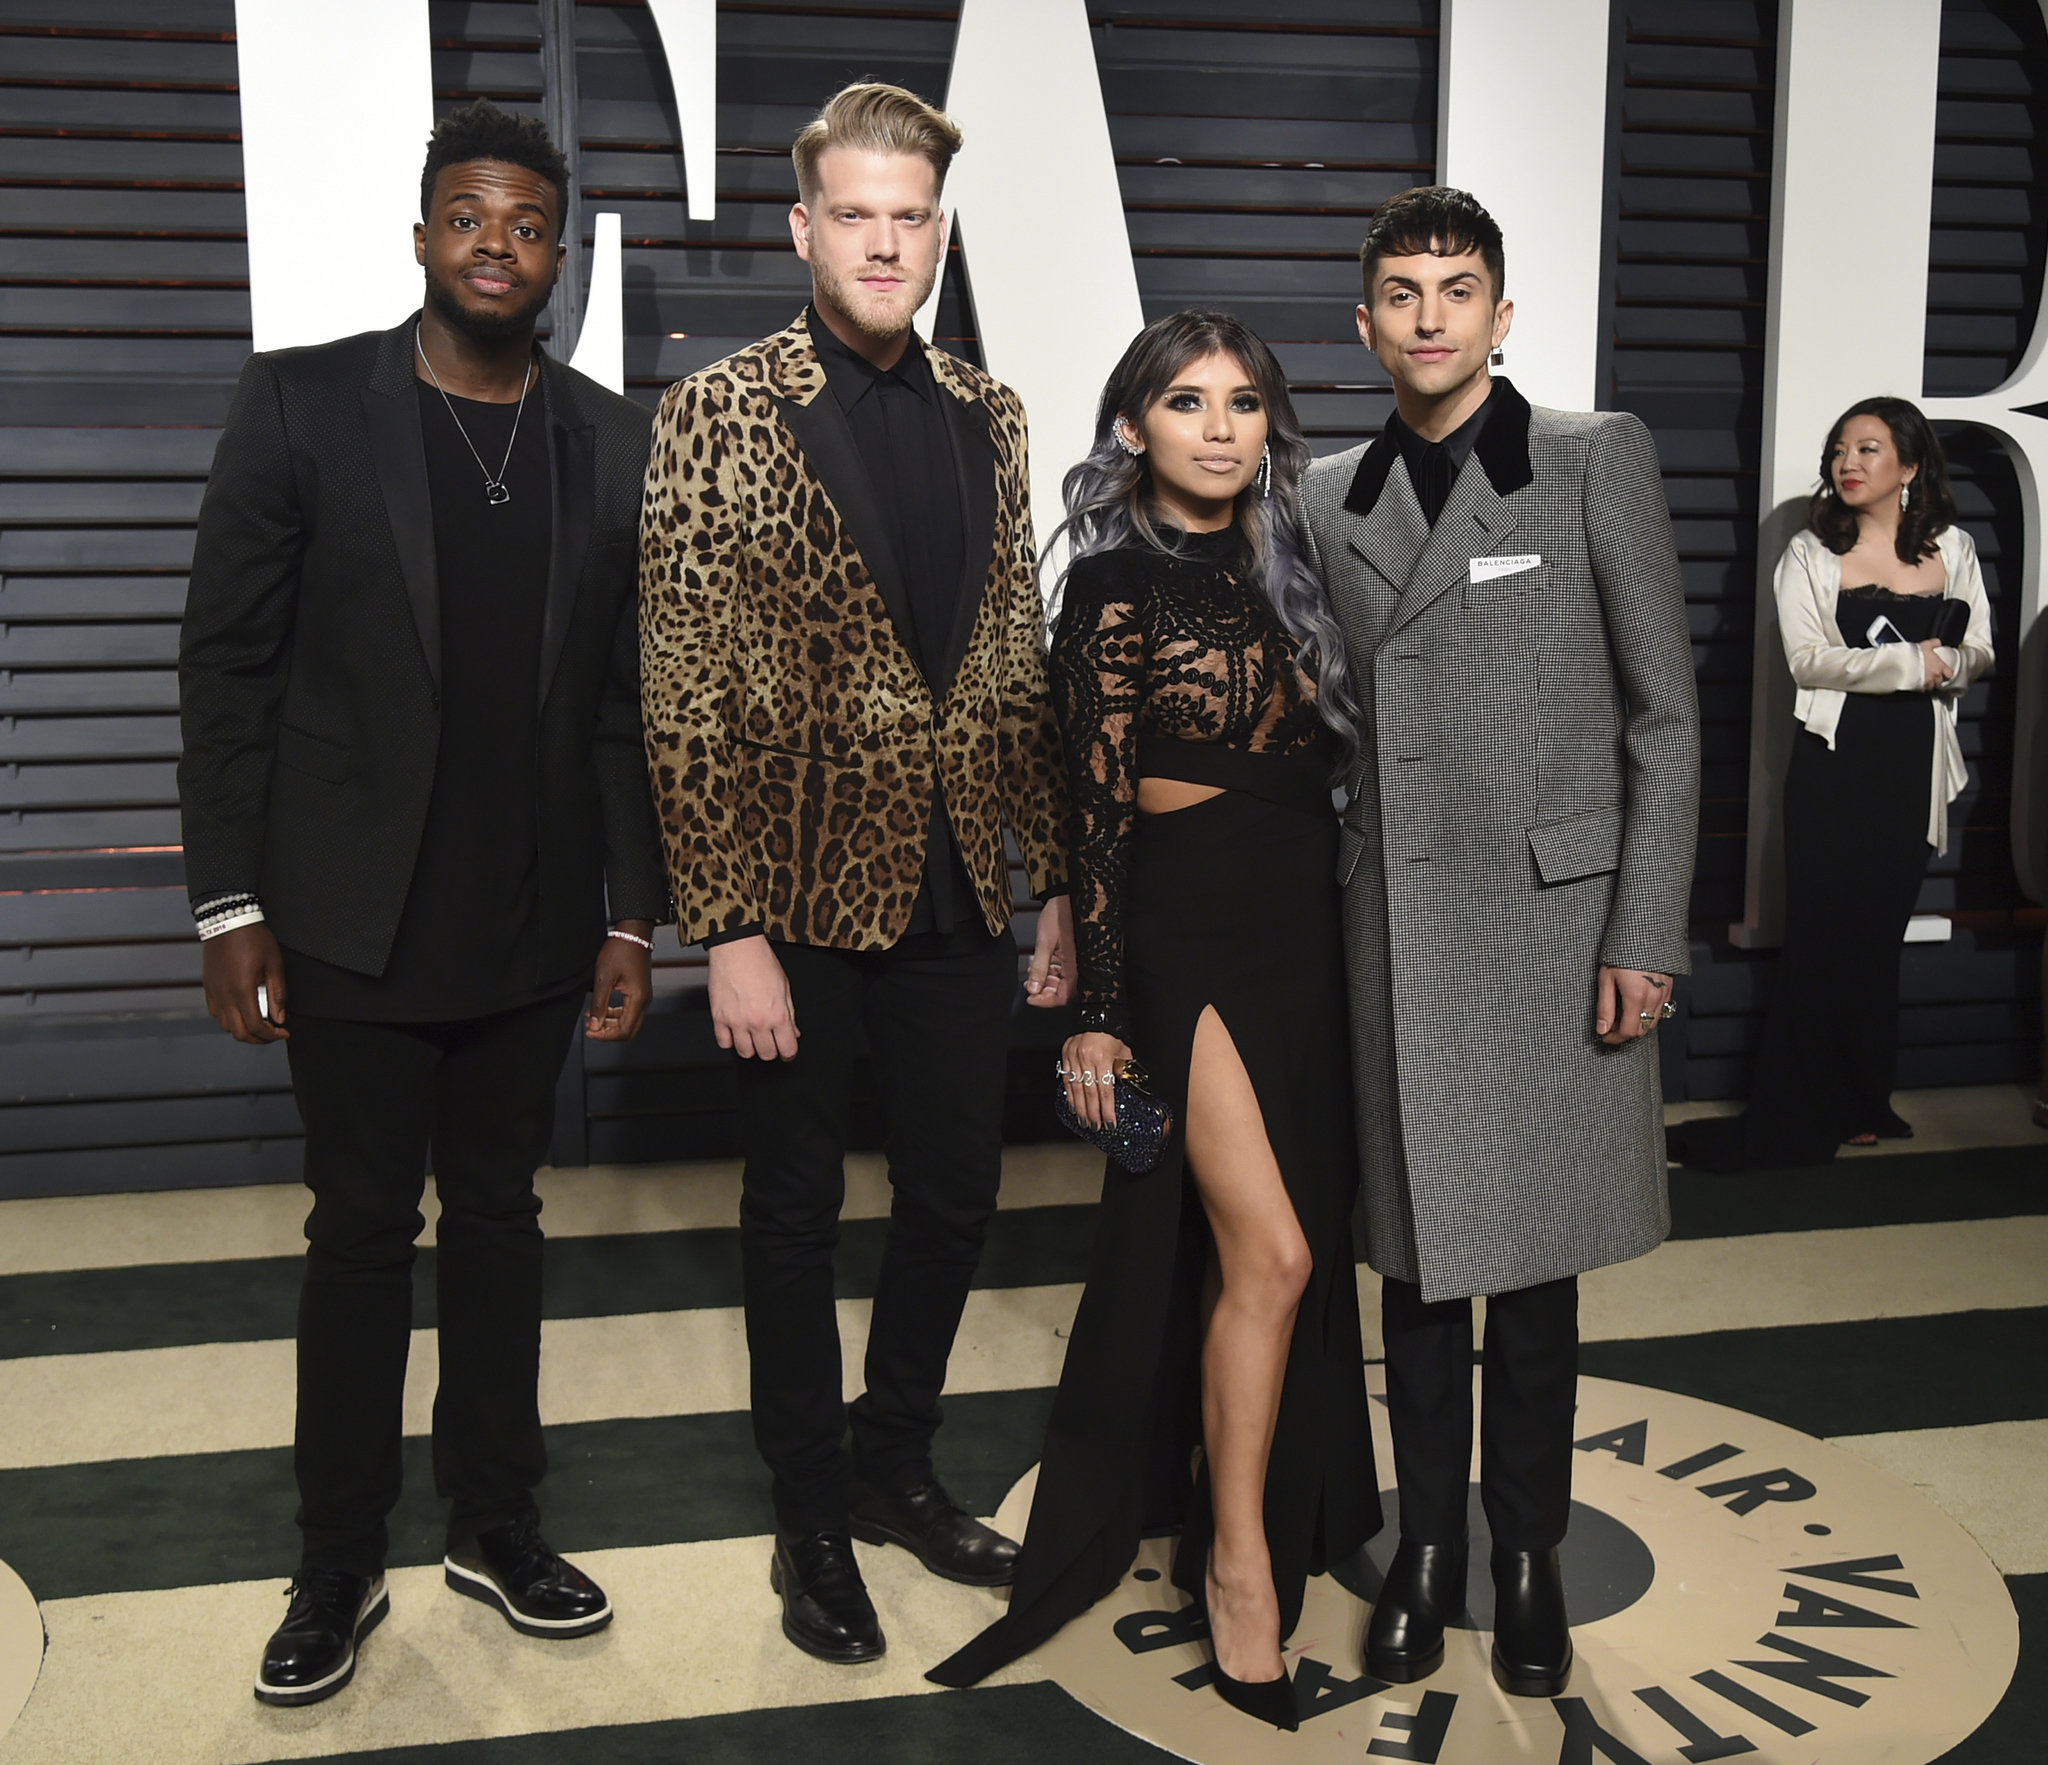 Aca-awesome: Pentatonix to perform at Lakeview Amphitheater in ...